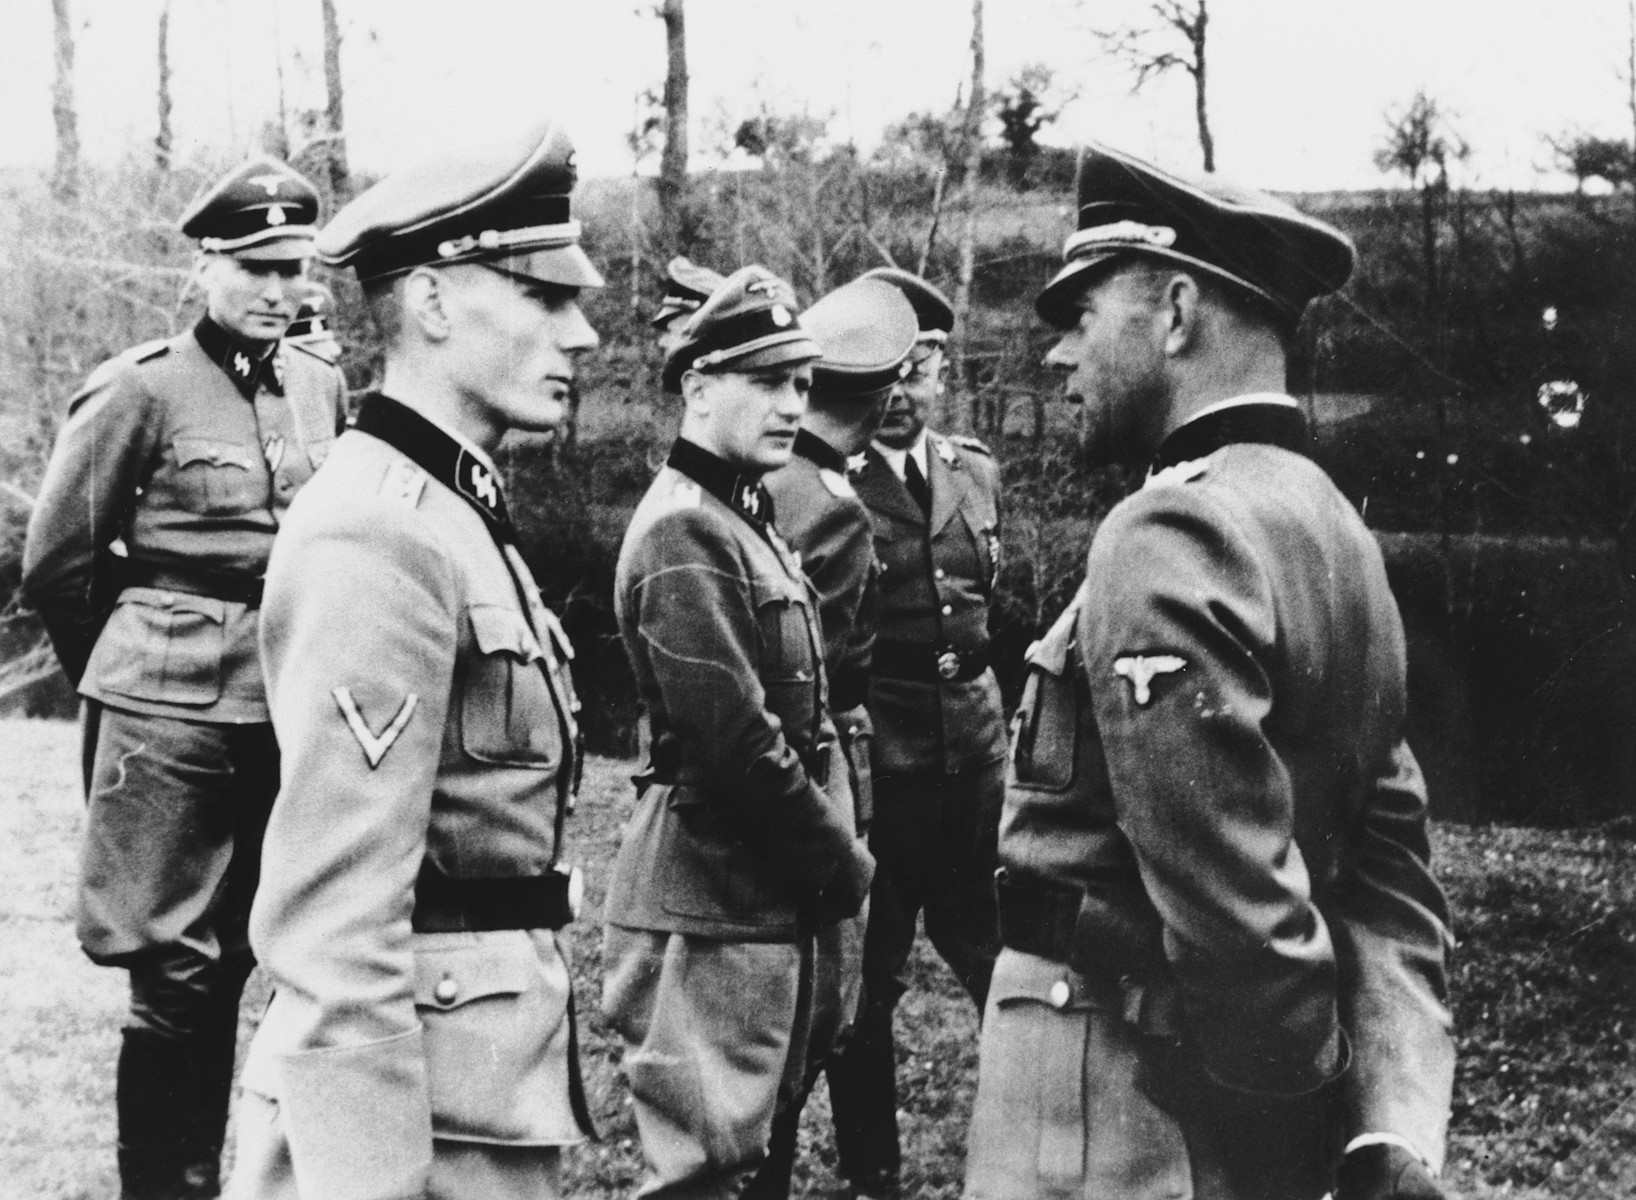 German SS officers confer in an unidentified location.  According to a reacher Werner Ostendorff is at the far right. The SS-Obergruppenfuehrer Carl Oberg is in the back, The photo was taken in Thouars on April 10, 1944. This during the formation of the SS-Division GÃtz von Berlichingen. The researchers's information came from Himmlers adjutant Werner Grothmann who Iidentified this and several other photos from the same time.